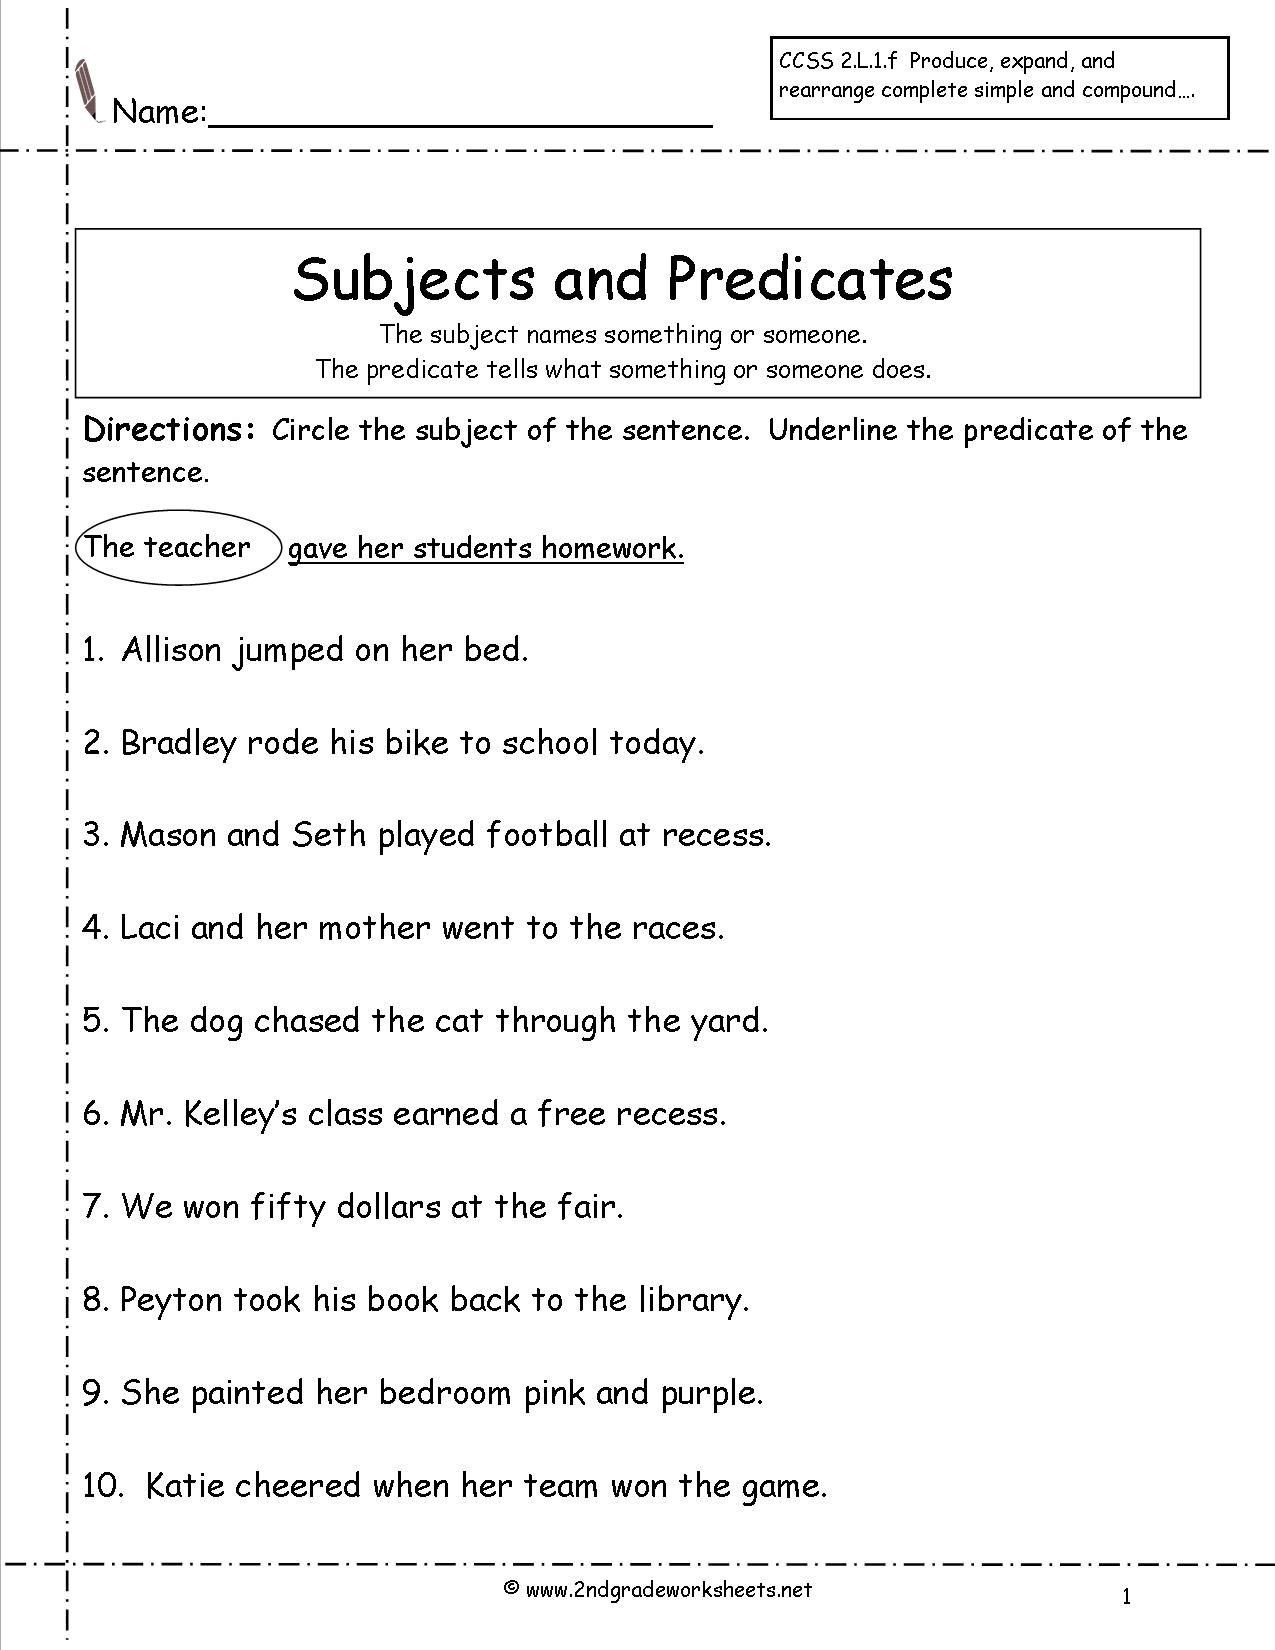 subject predicate worksheets 2nd grade Google Search